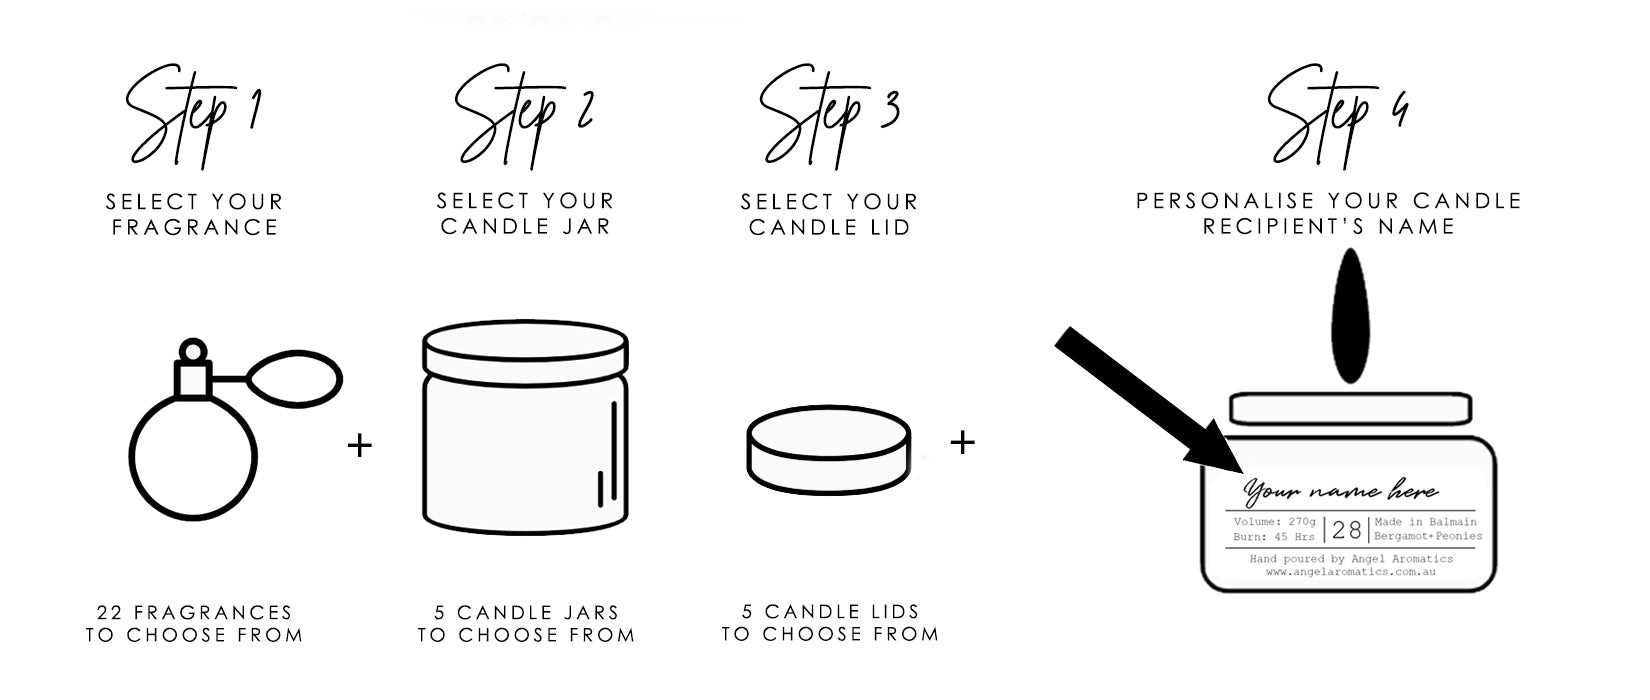 create your own personalised candles